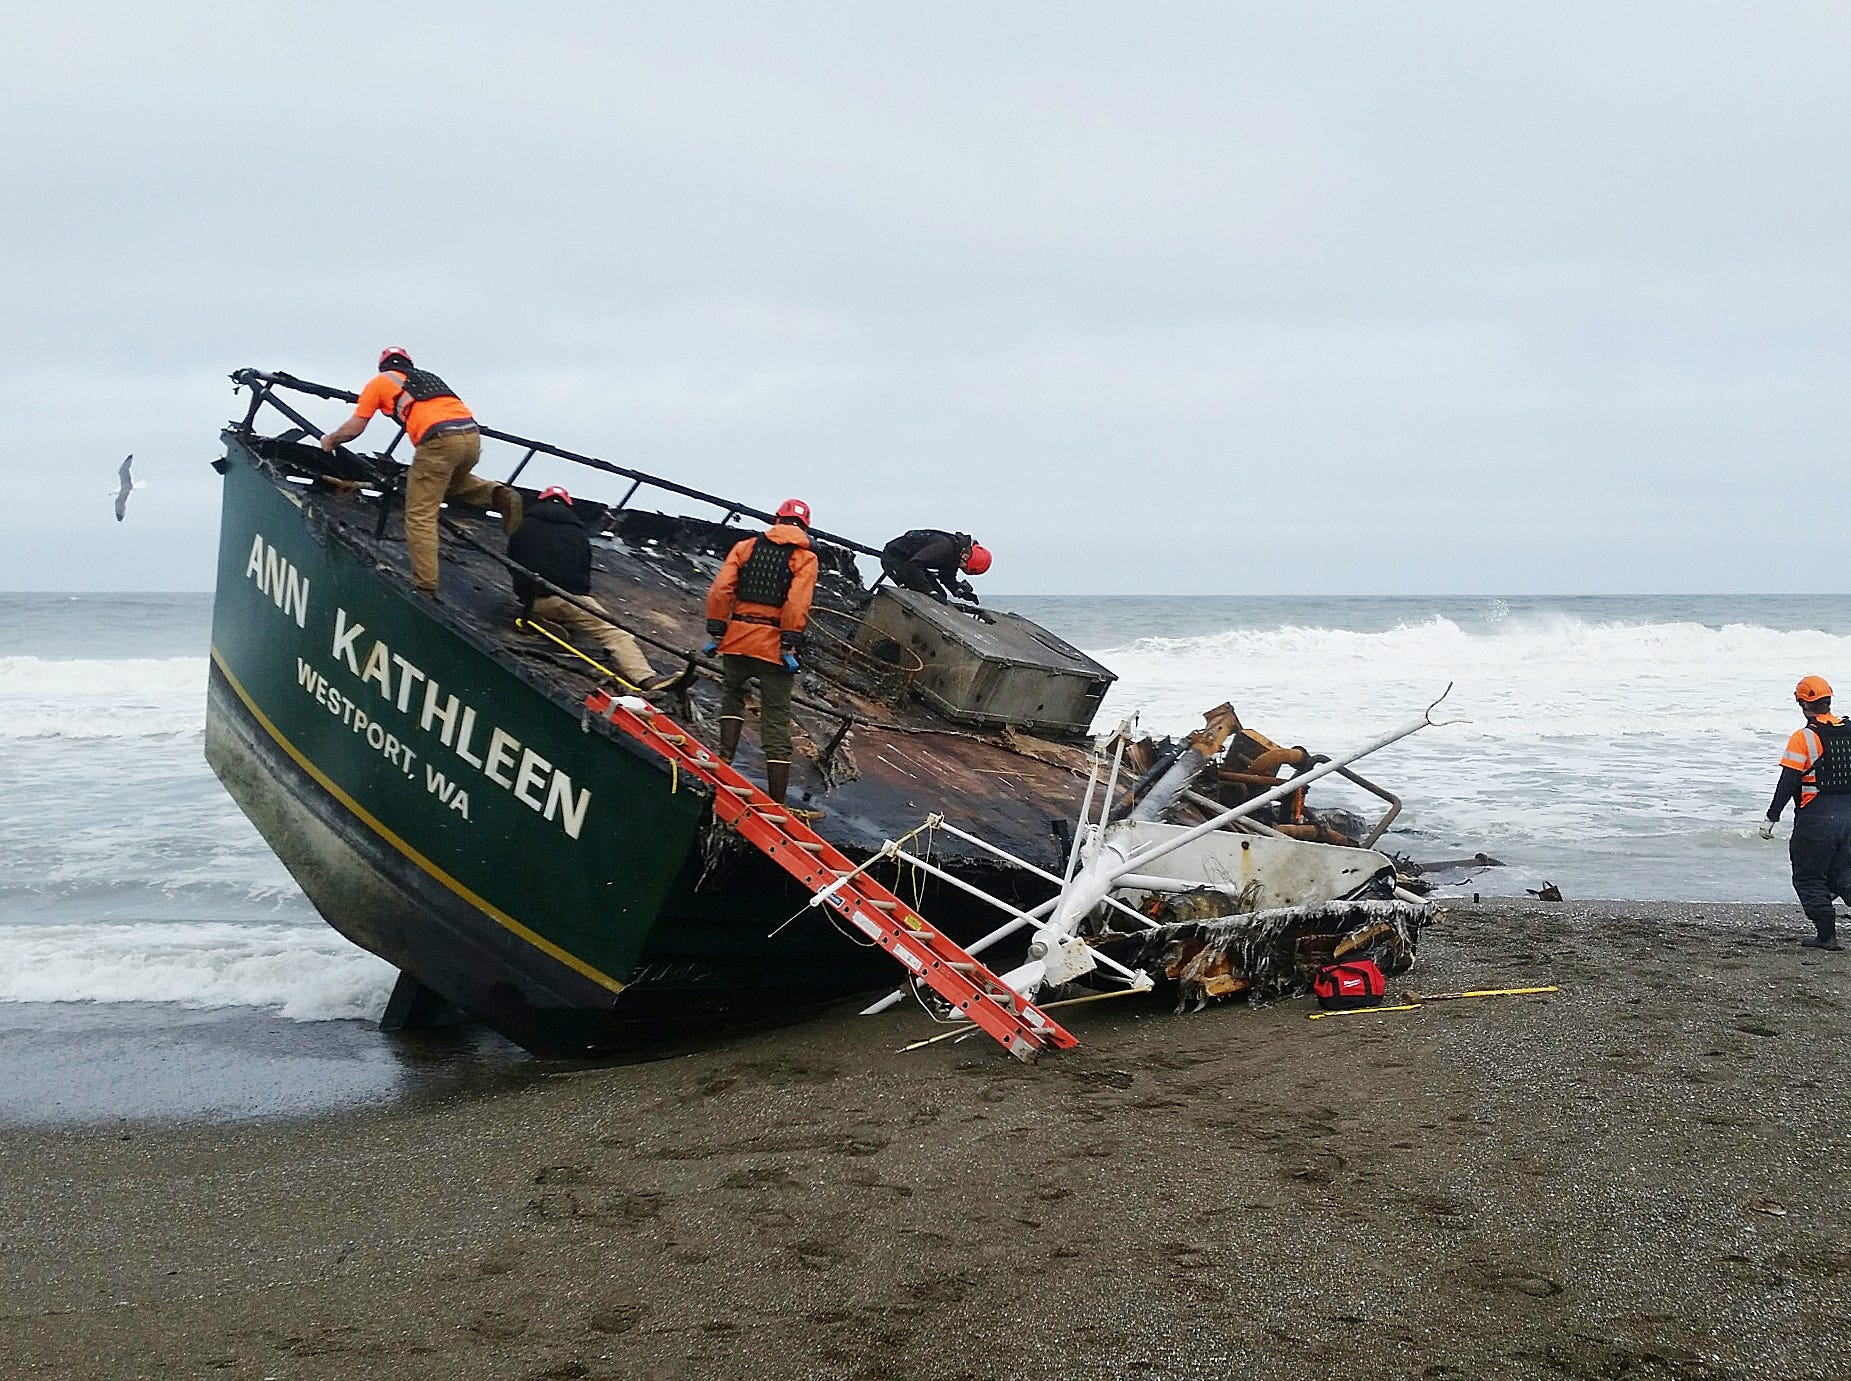 Responders examine the 64-foot commercial sailing vessel Ann Kathleen that beached near Bandon, May 4, 2019.